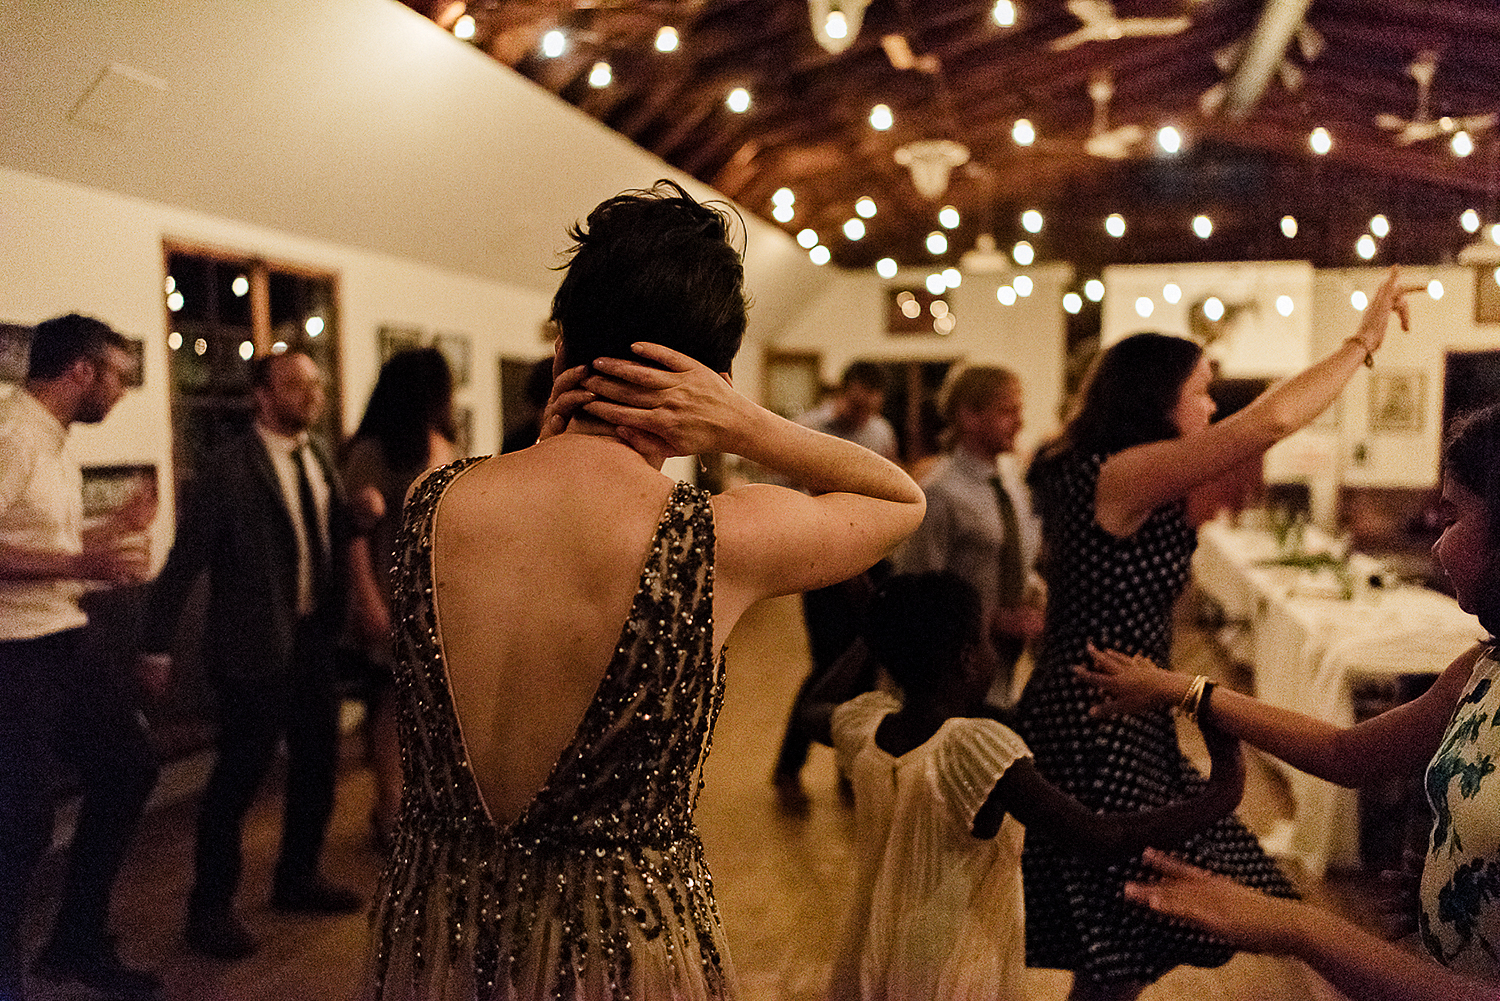 Best-Wedding-Photographers-in-Toronto-with-Photojournalistic-Documentary-Style-3B-Photography-Brian-Batista-Bettencourt-Intimate-Vintage-Wedding-at-Toronto-Island-Cafe-Clubhouse-Reception-Bride-Dancing.jpg